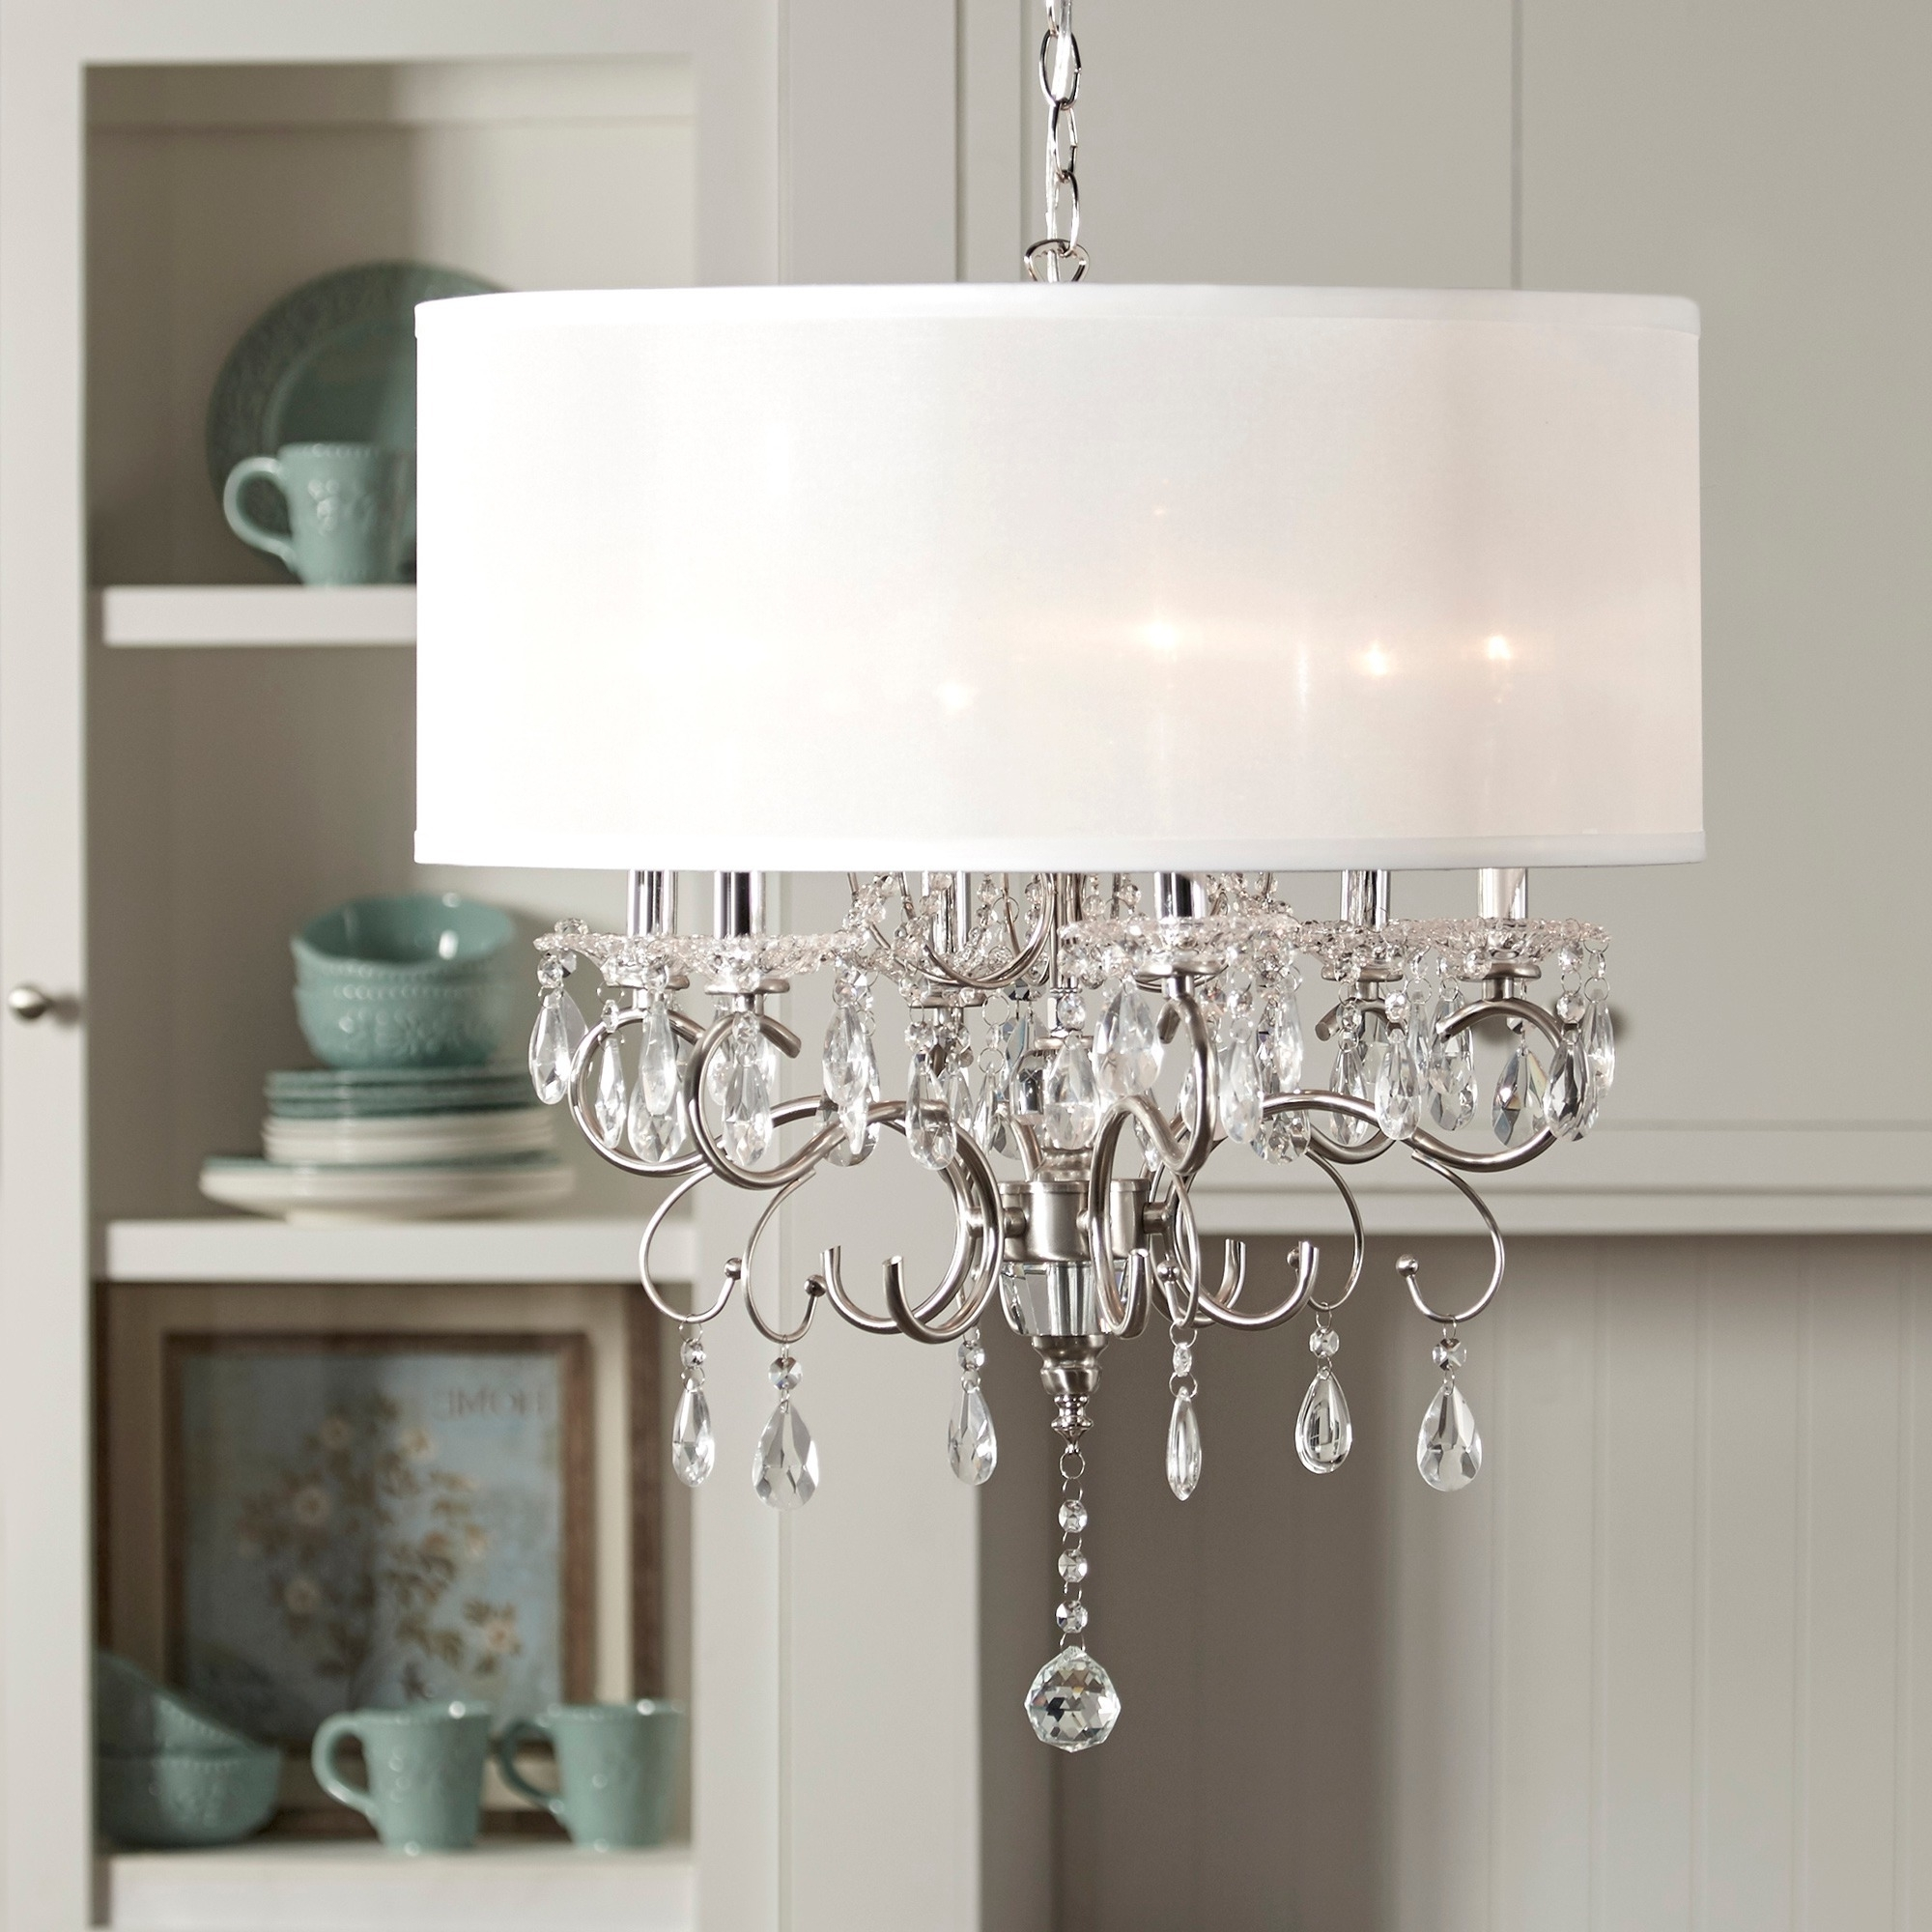 Lighting: Crystal Drum Light Pendant With Wall Mount Shelves For Inside Well Liked Wall Mounted Chandelier Lighting (View 8 of 20)